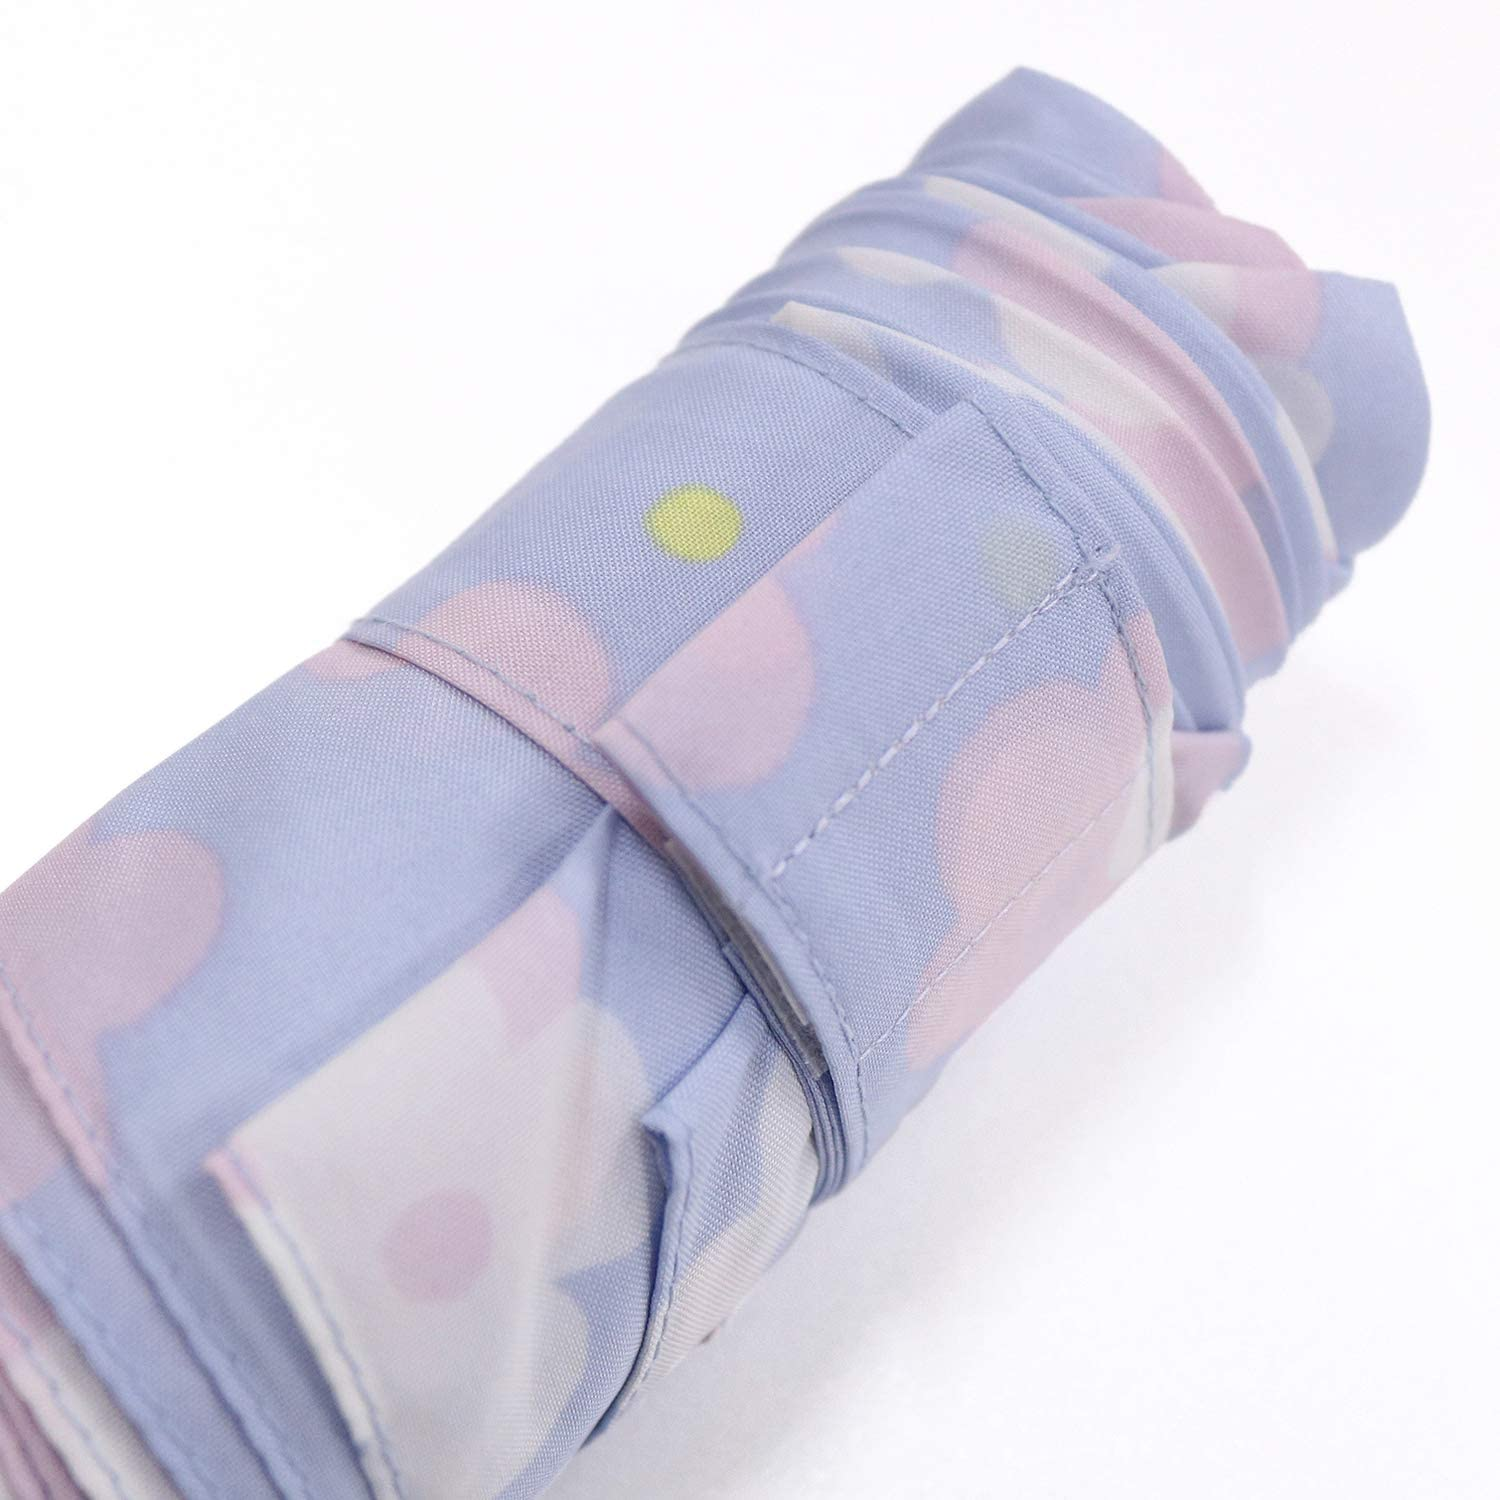 Nifty Colors folding umbrella gray size//about 51cm /× about 88cm Pale Flower 5-stage six bone